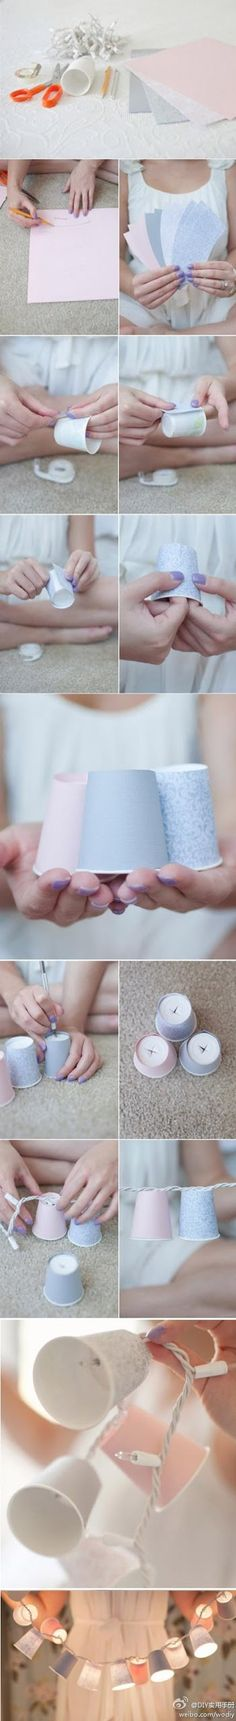 """Make light shades with paper cups ~ Another craft that can be used all year ~ just make new """"shades"""" by changing out the cups.  Decorate the cups with 'scrapbooking' paper to change with the season/holiday."""